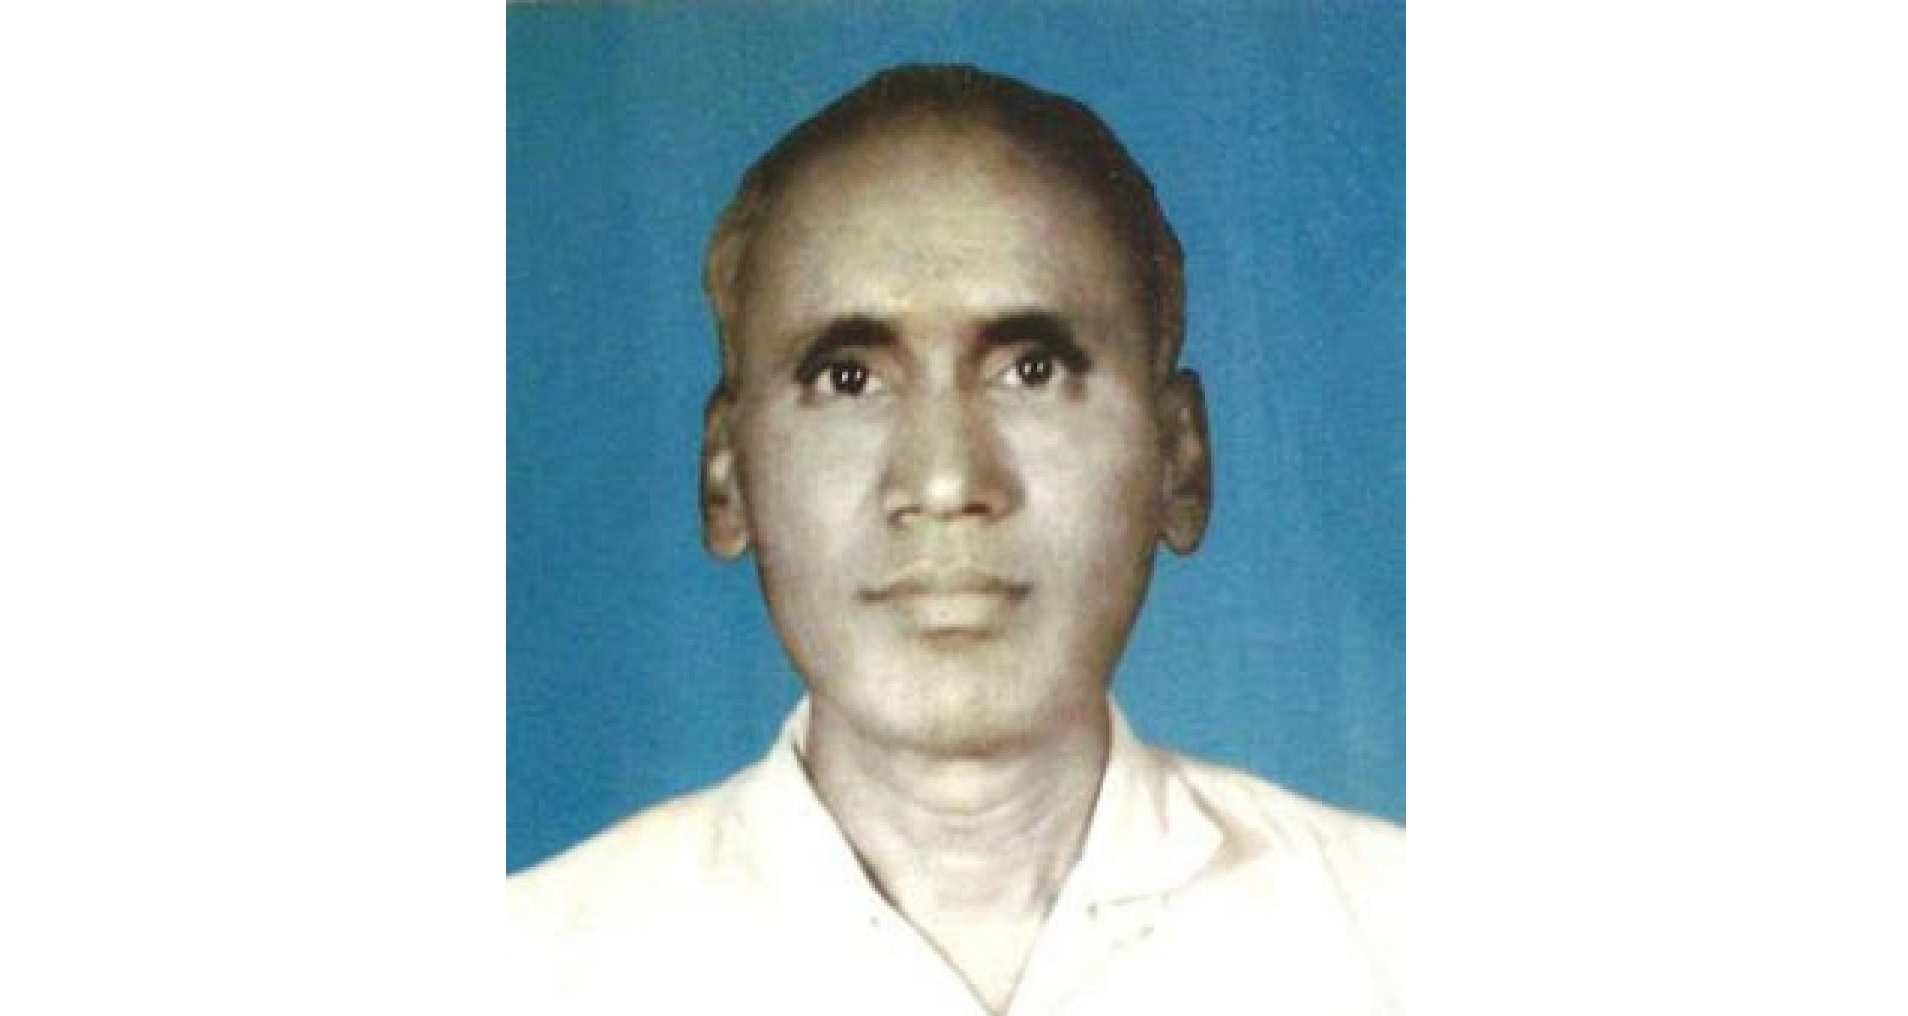 P V Subba Rao: All Indians Were His Brothers And Sisters